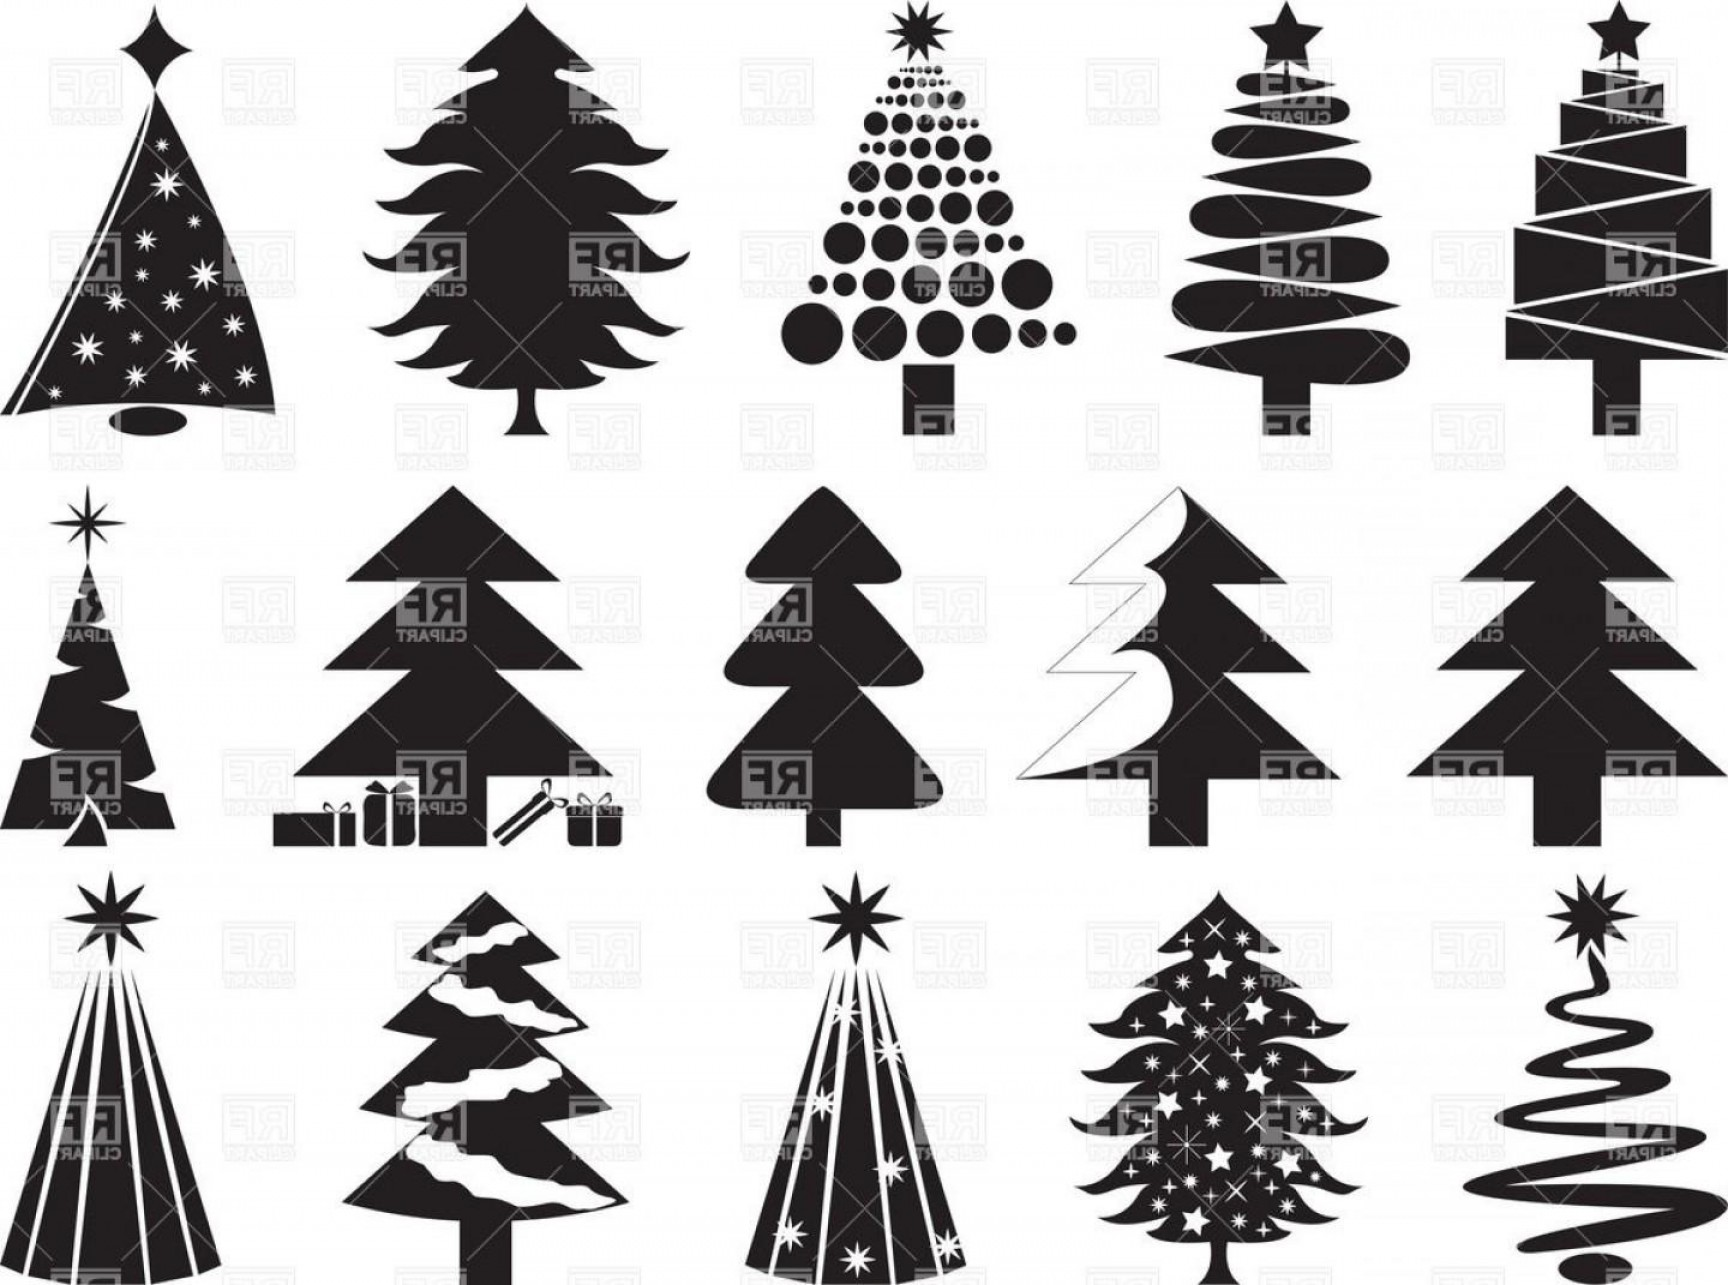 Stylized pine tree clipart clipart freeuse Pine Tree Silhouette Vector Clip | SOIDERGI clipart freeuse